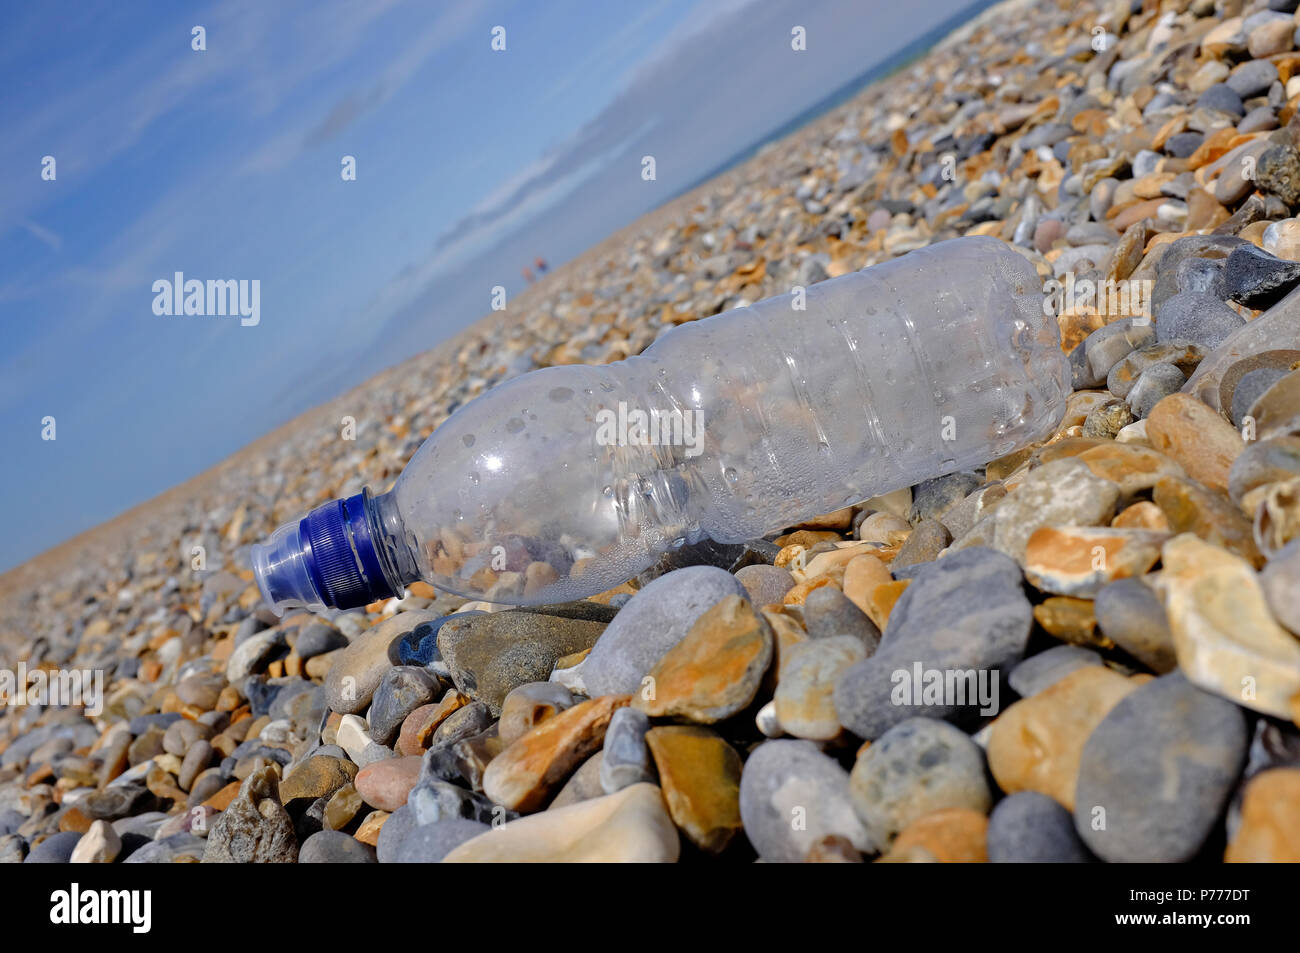 plastic bottle on shingle beach, cley, north norfolk, england - Stock Image